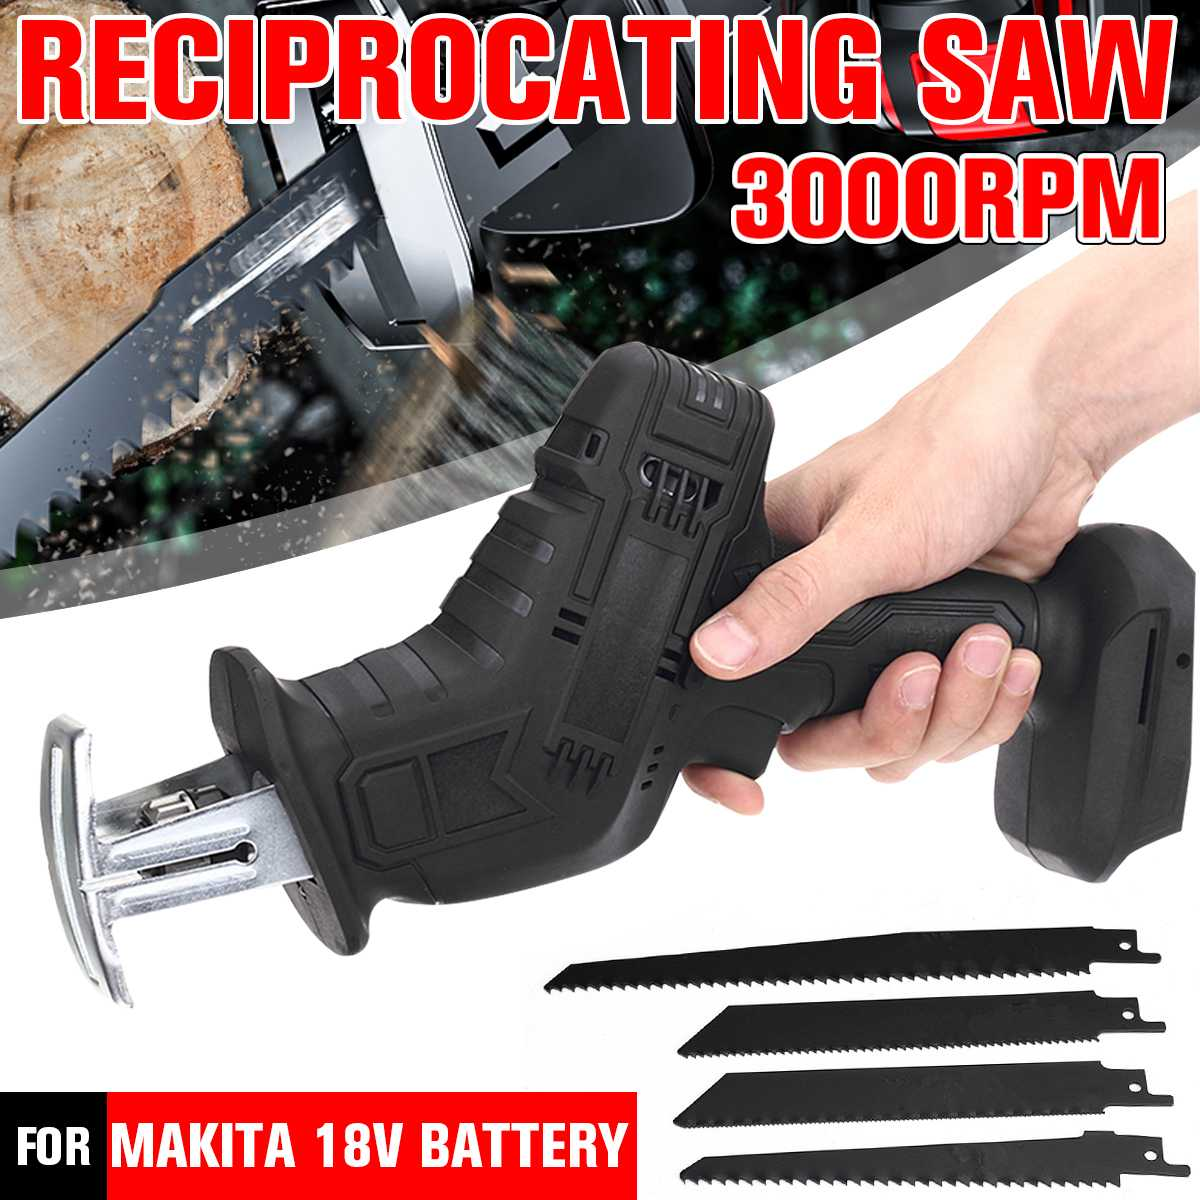 Electric Saw 18V Reciprocating Saw Variable Speed 3000rpm/min Cordless Metal Wood Cutting Machine Tool for Makita 18V Battery